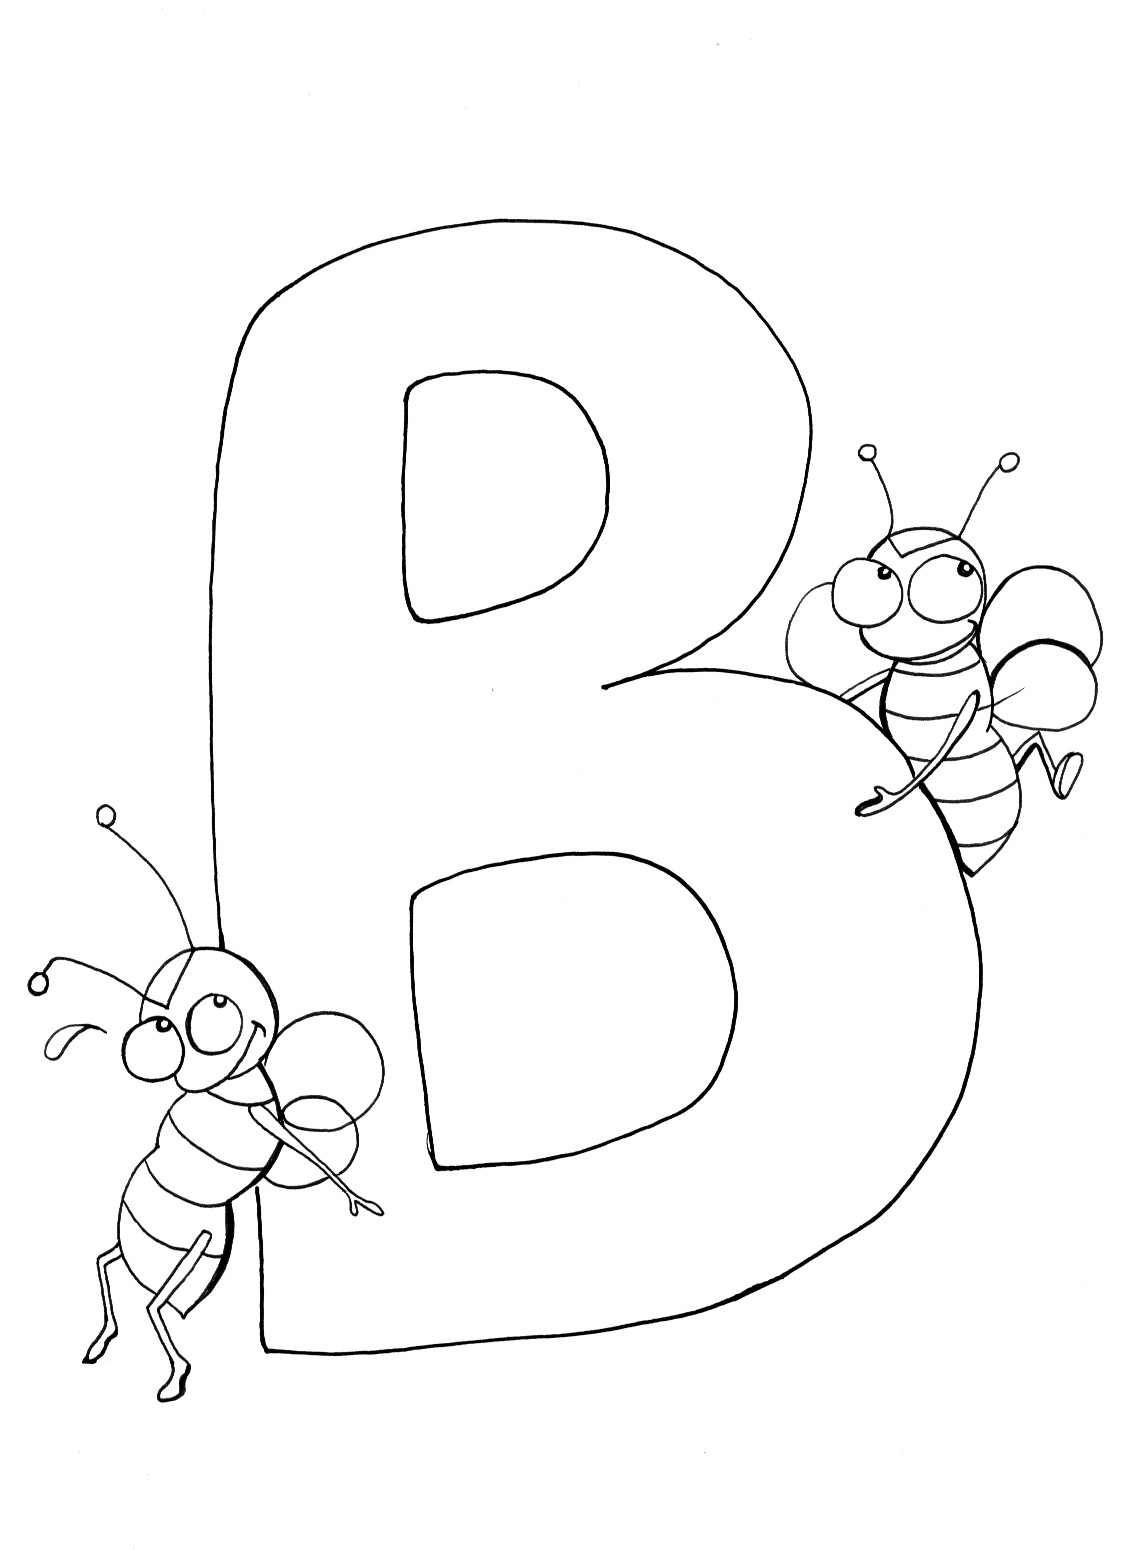 B Coloring Page Animal Alphabet B Coloring Page Stock Vector Illustration Of Fonts